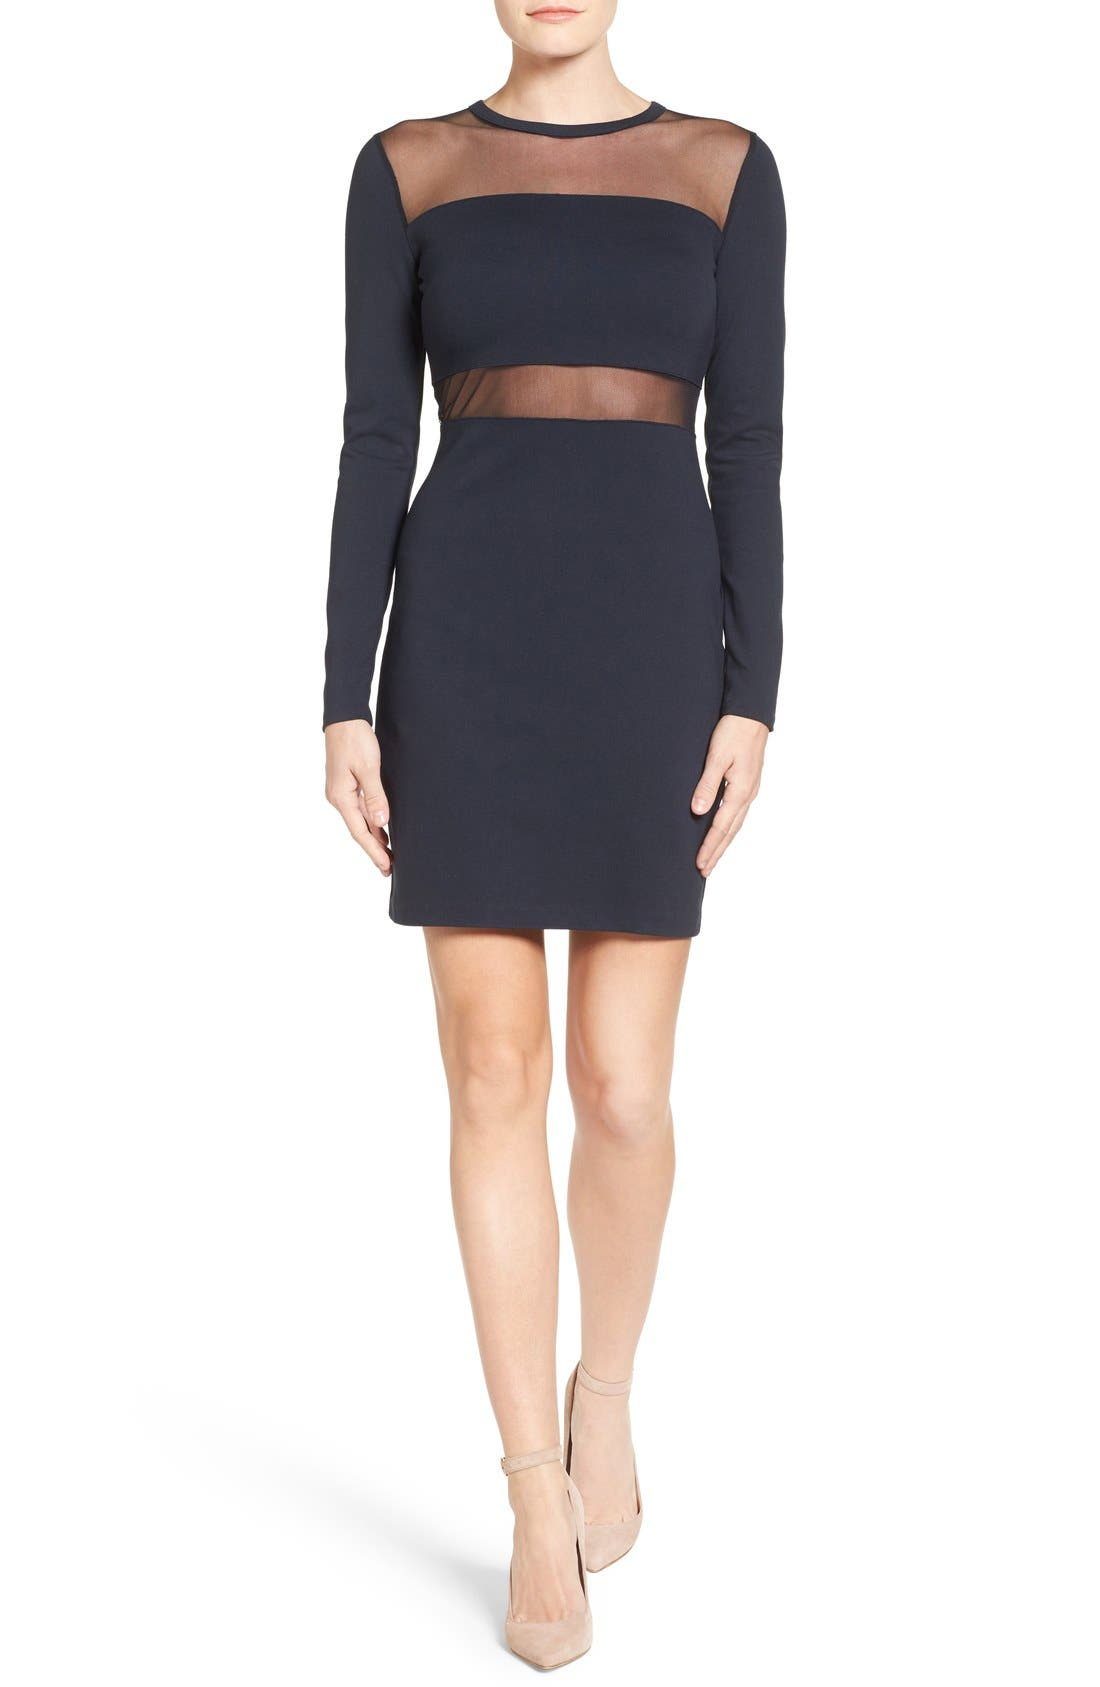 Alternate Image 1 Selected - MICHAEL Michael Kors Mesh Panel Sheath Dress